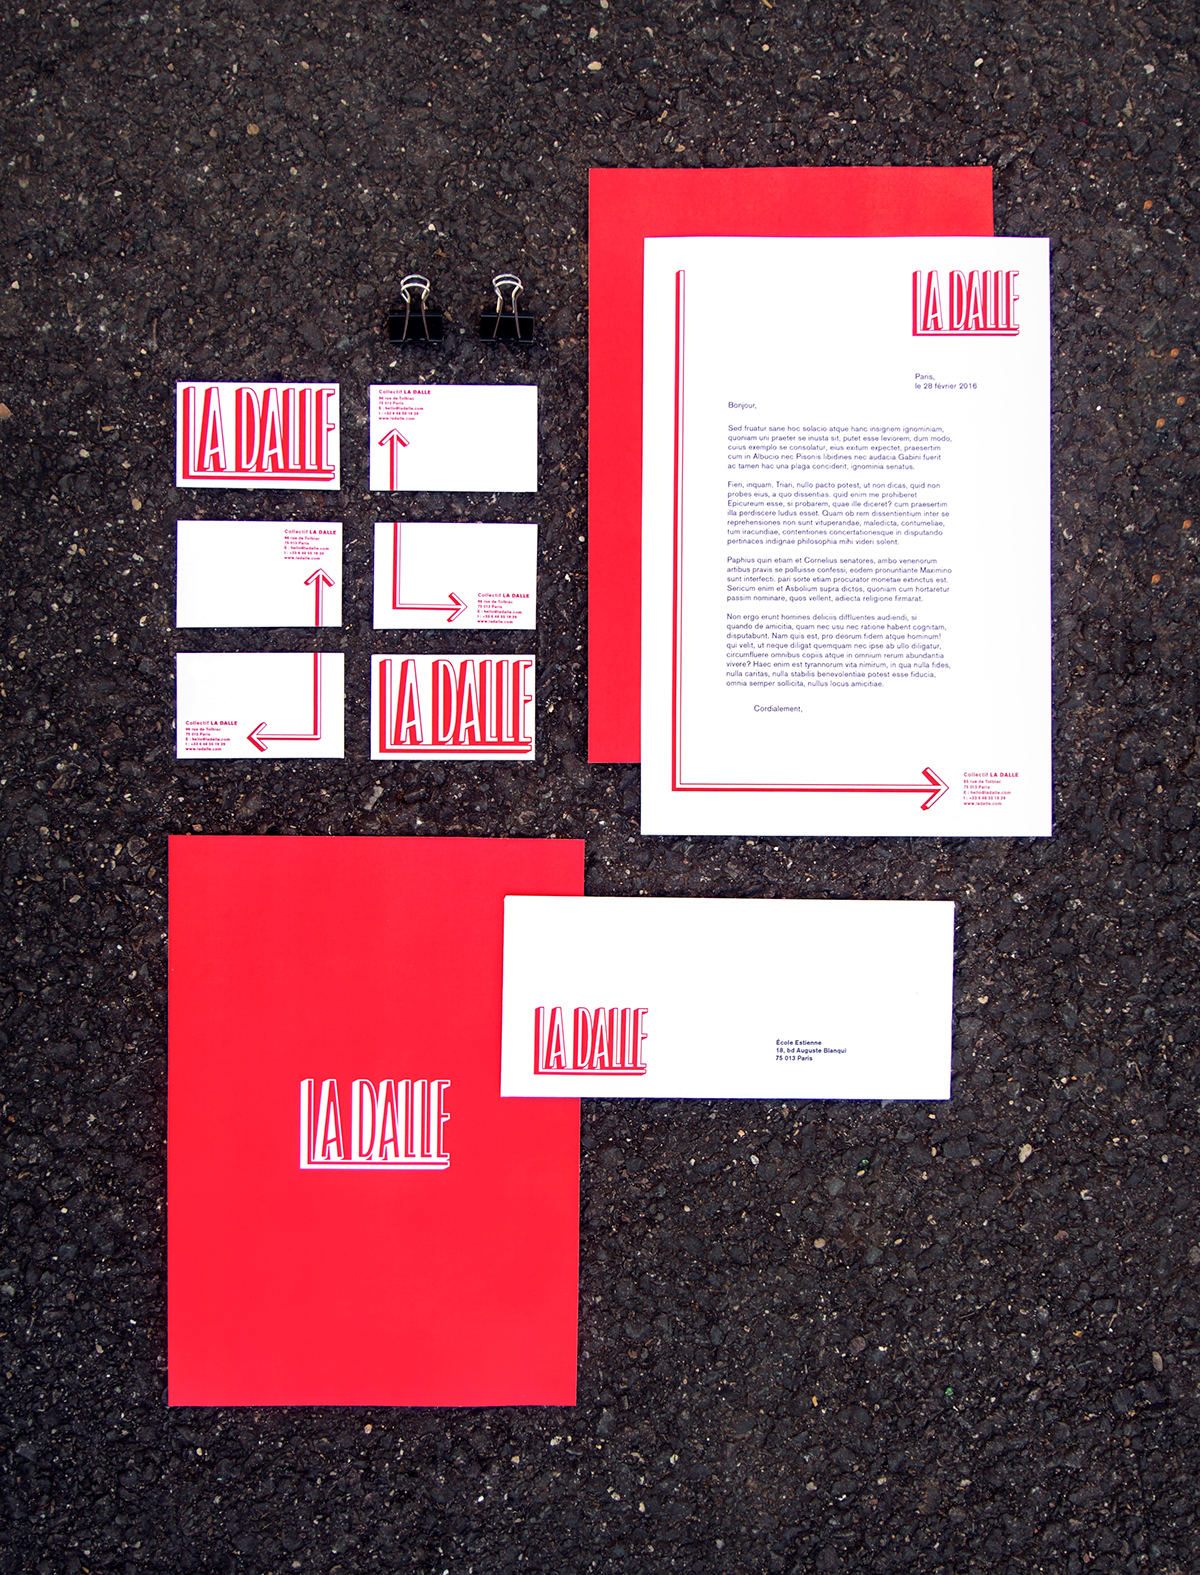 agency identity collectif self branding associatif   graphisme engagé red typography   auto promotion